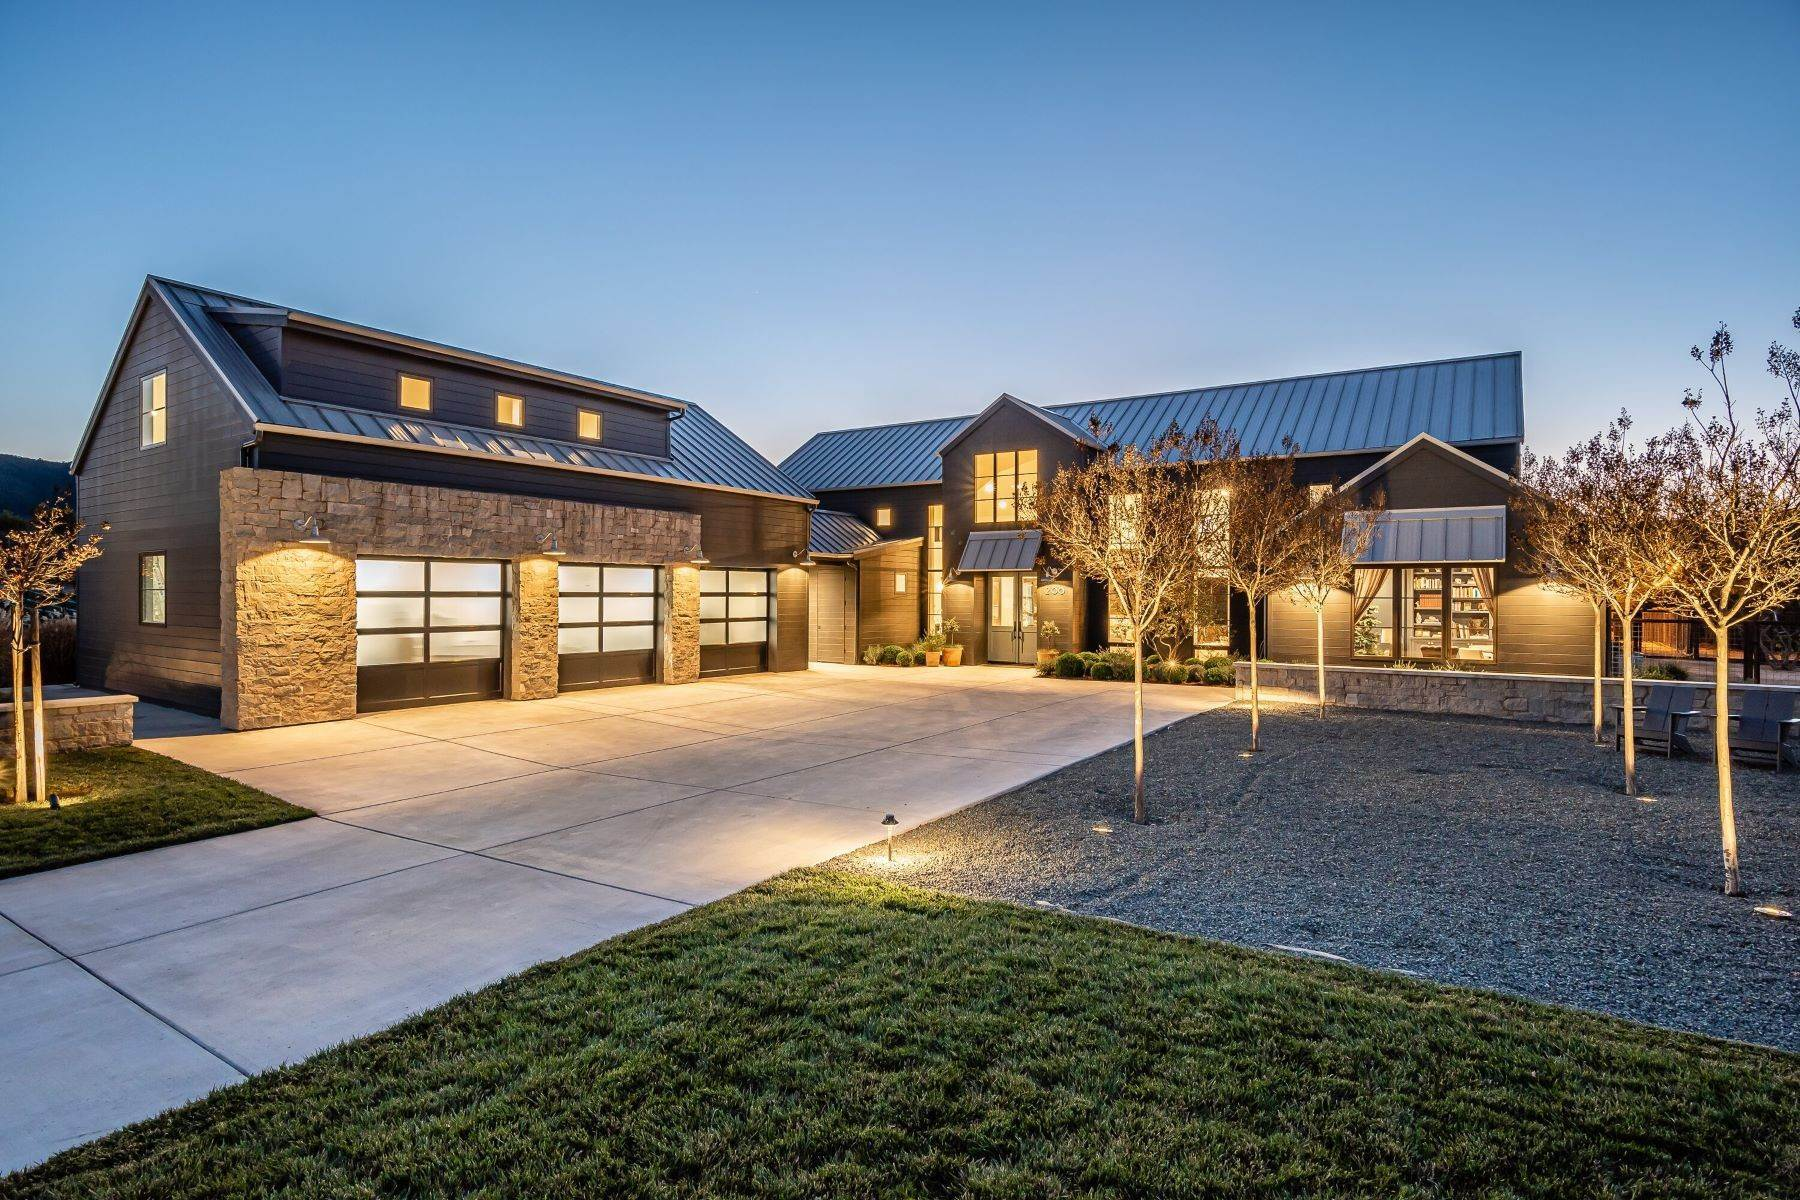 Single Family Homes for Sale at Gorgeous modern farmhouse with guest house 200 Jespersen Road San Luis Obispo, California 93401 United States